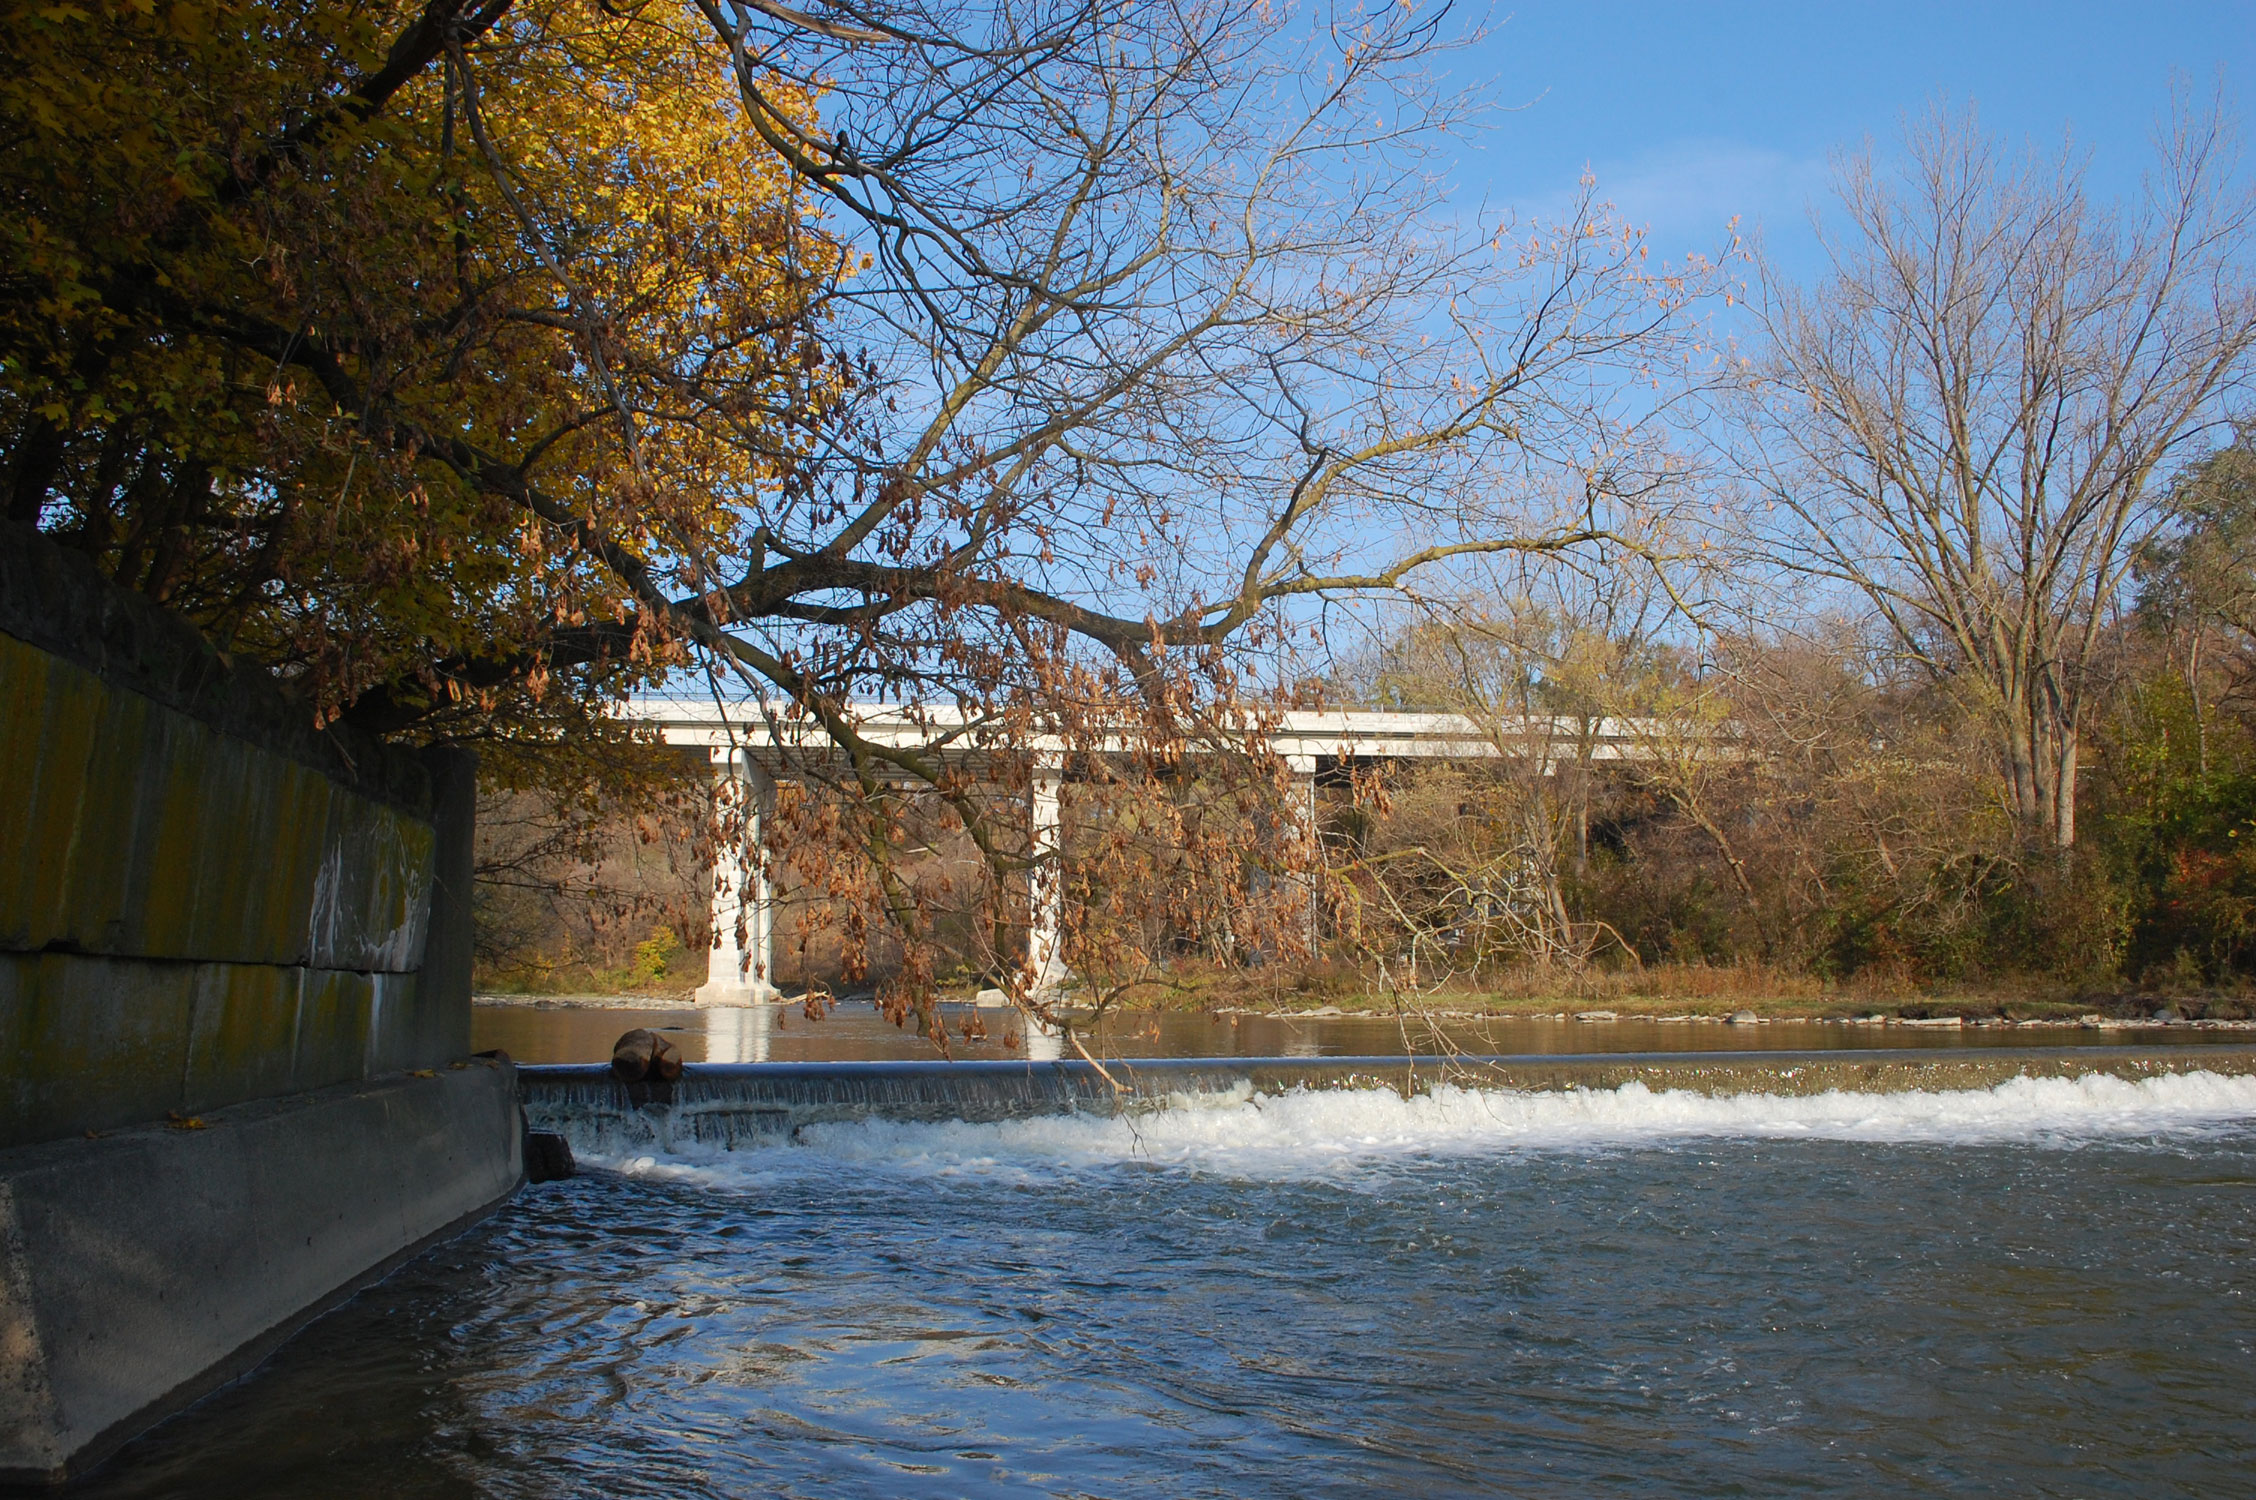 The Dundas Humber River Bridge